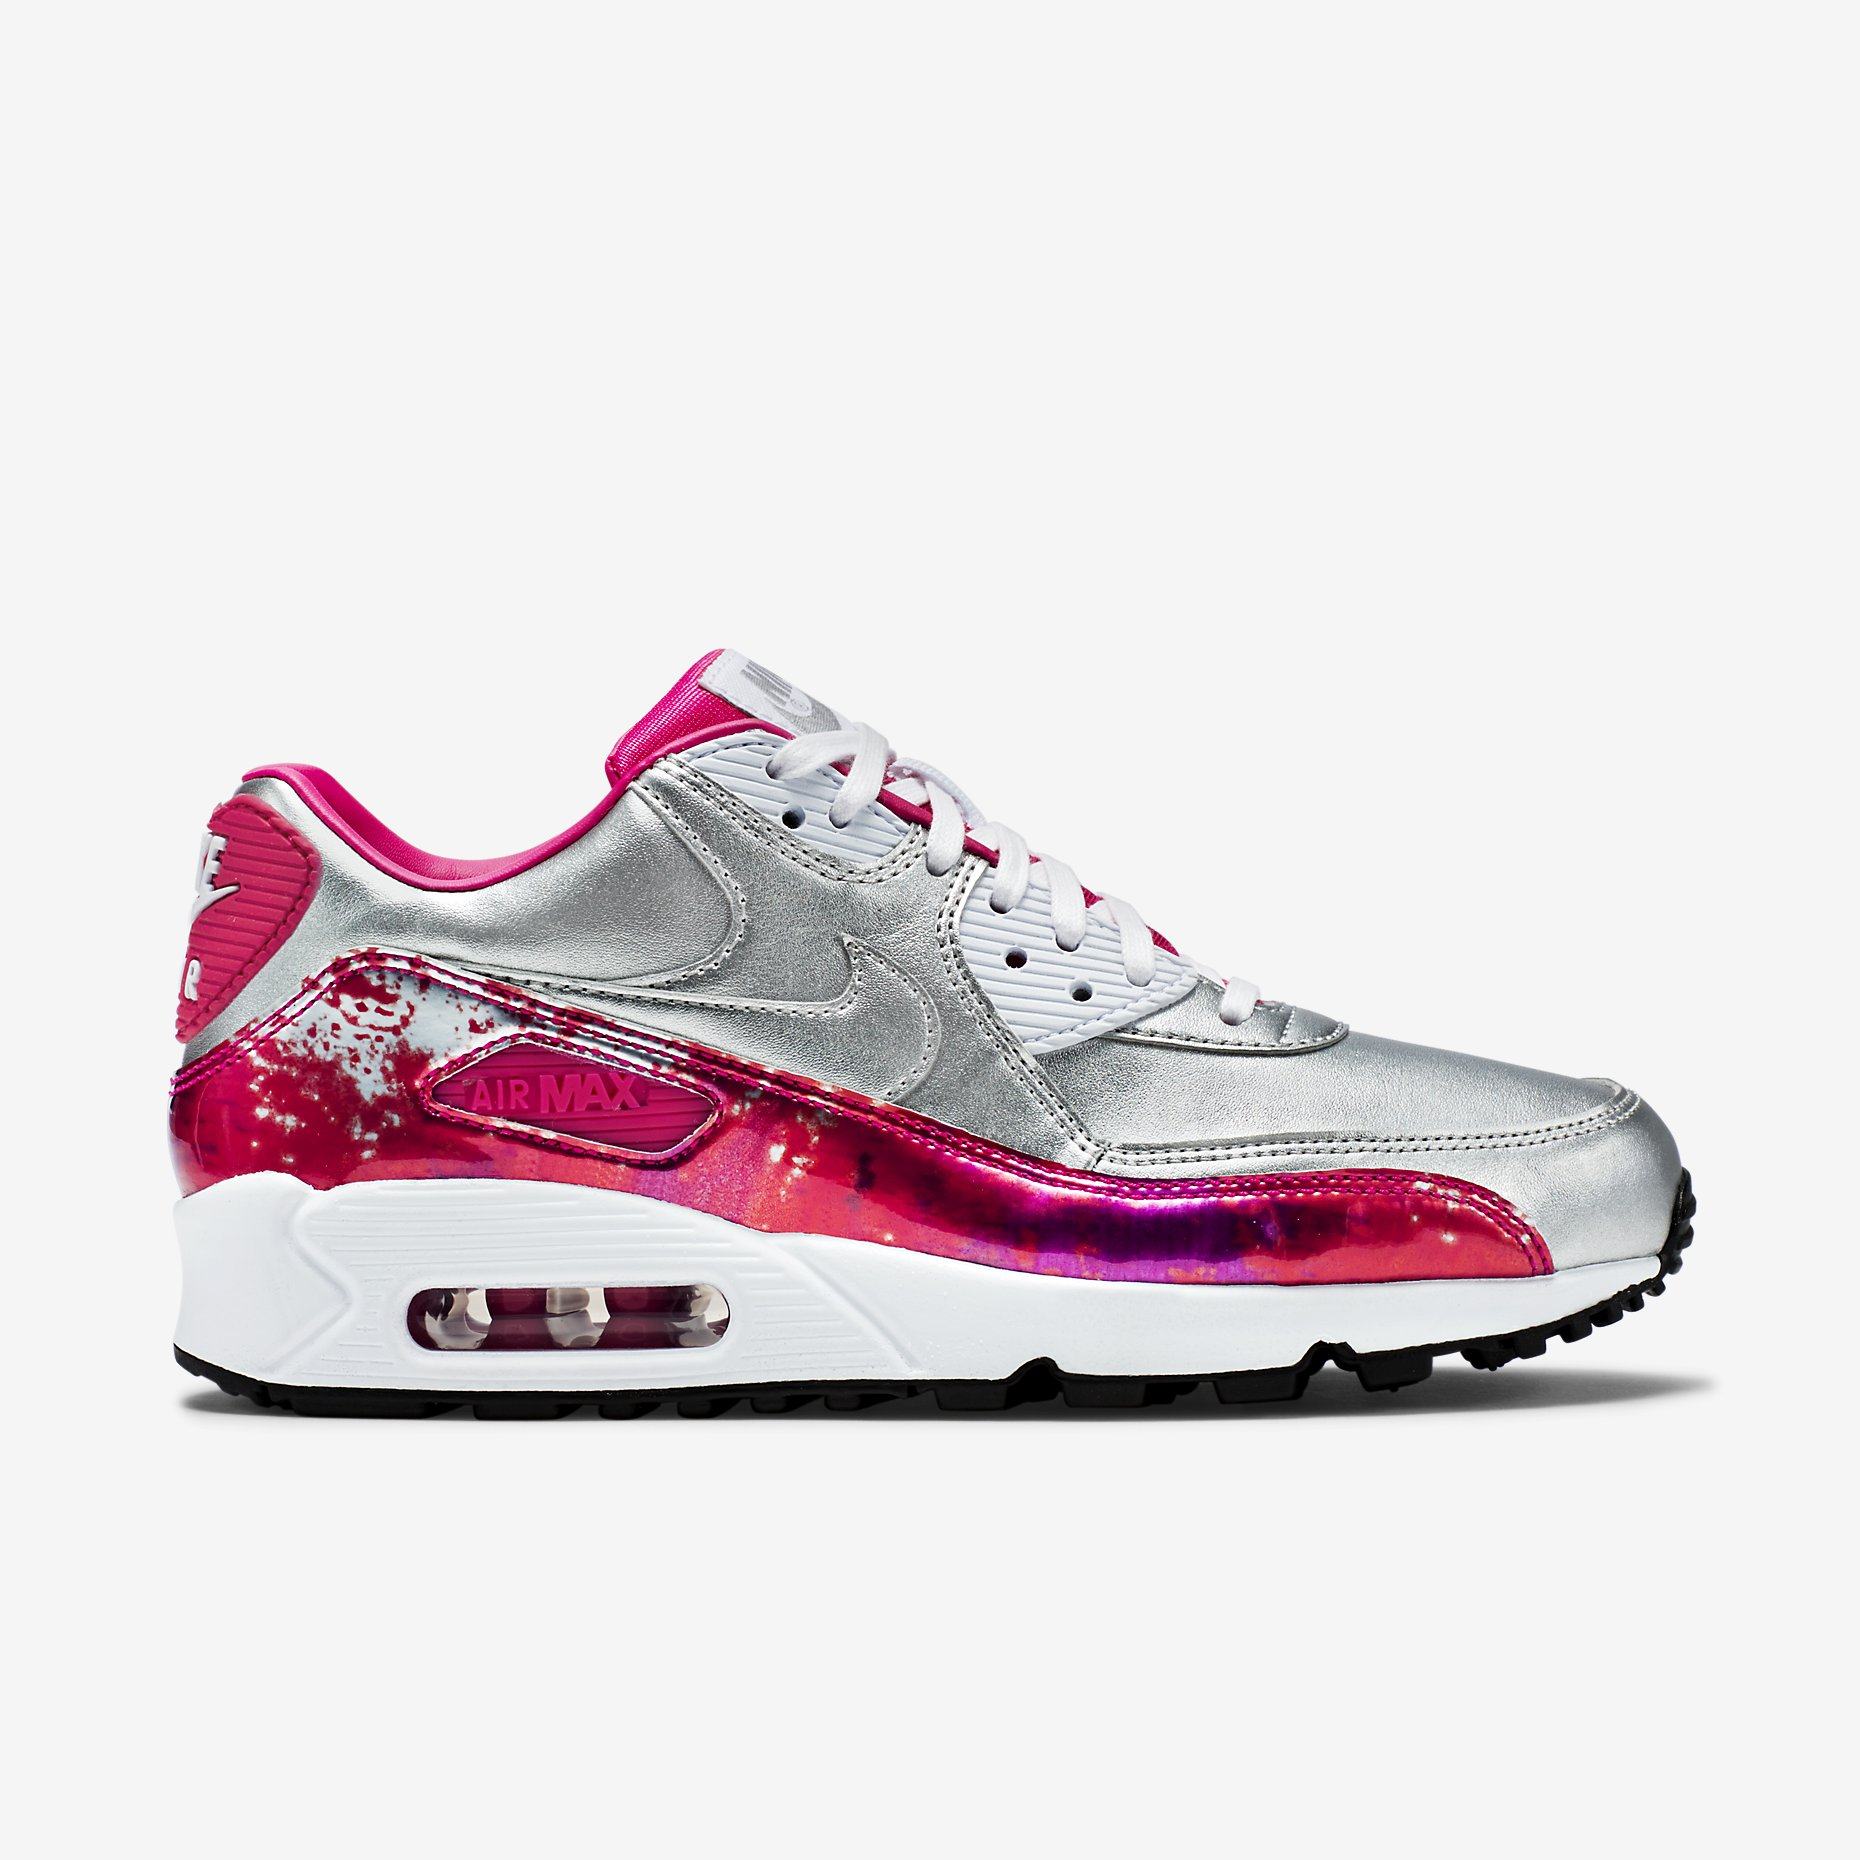 pretty nice a09c1 49938 Nike Air Max 90 GS Youth Girls   Womens Running Shoes Trainers NWOB